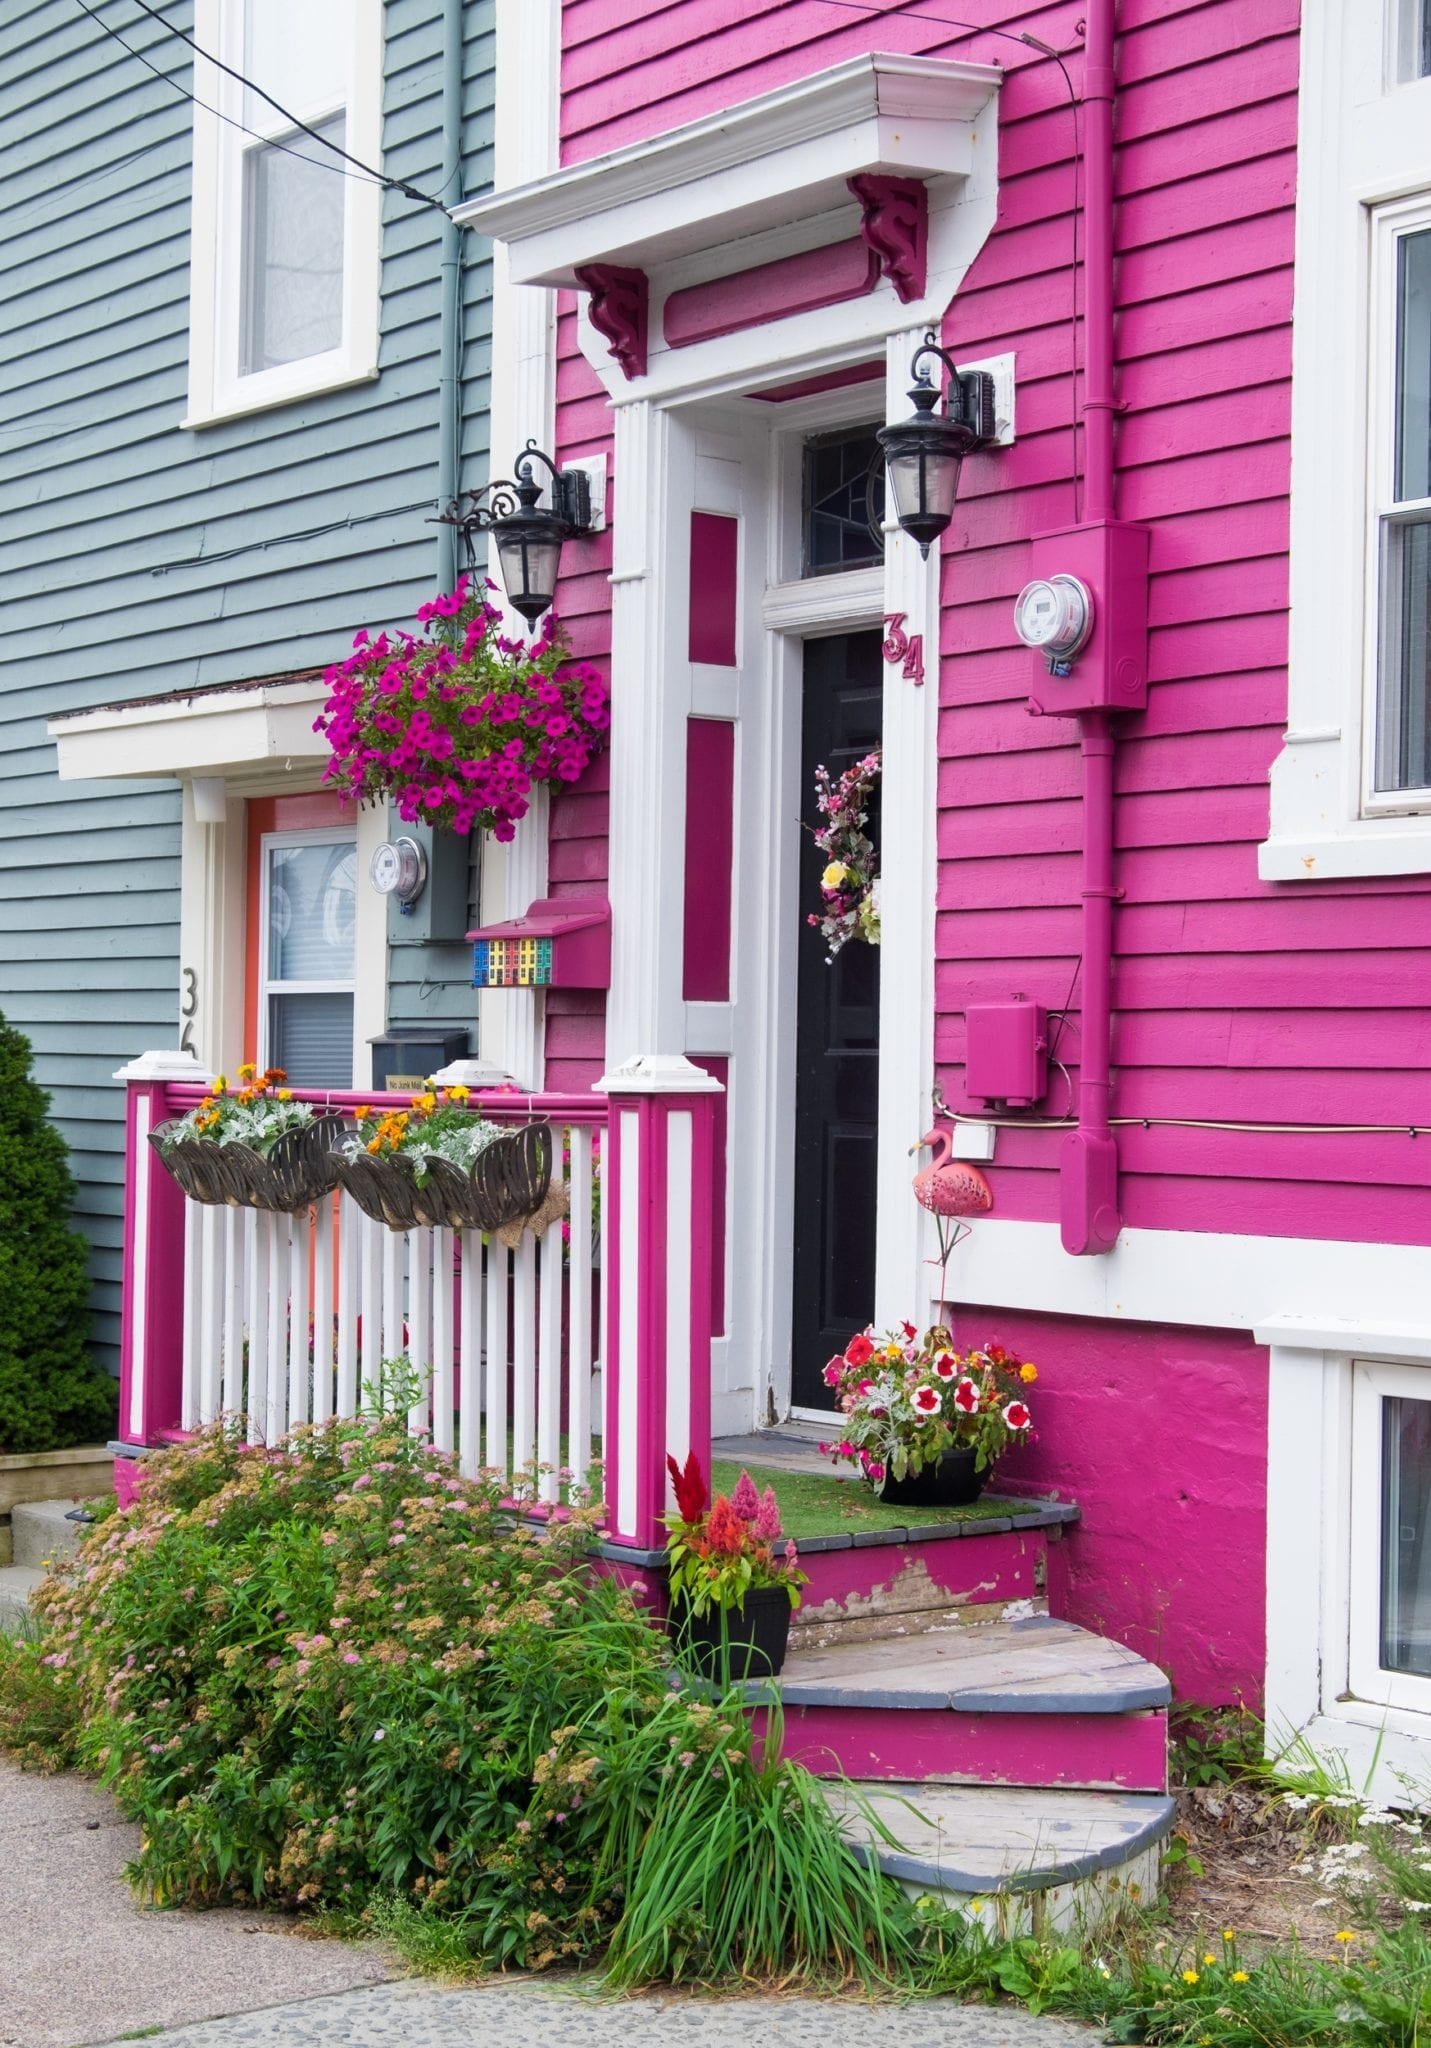 A bright pink house with a tiny porch and bushes and pink plants hanging, in St. John's, Newfoundland.